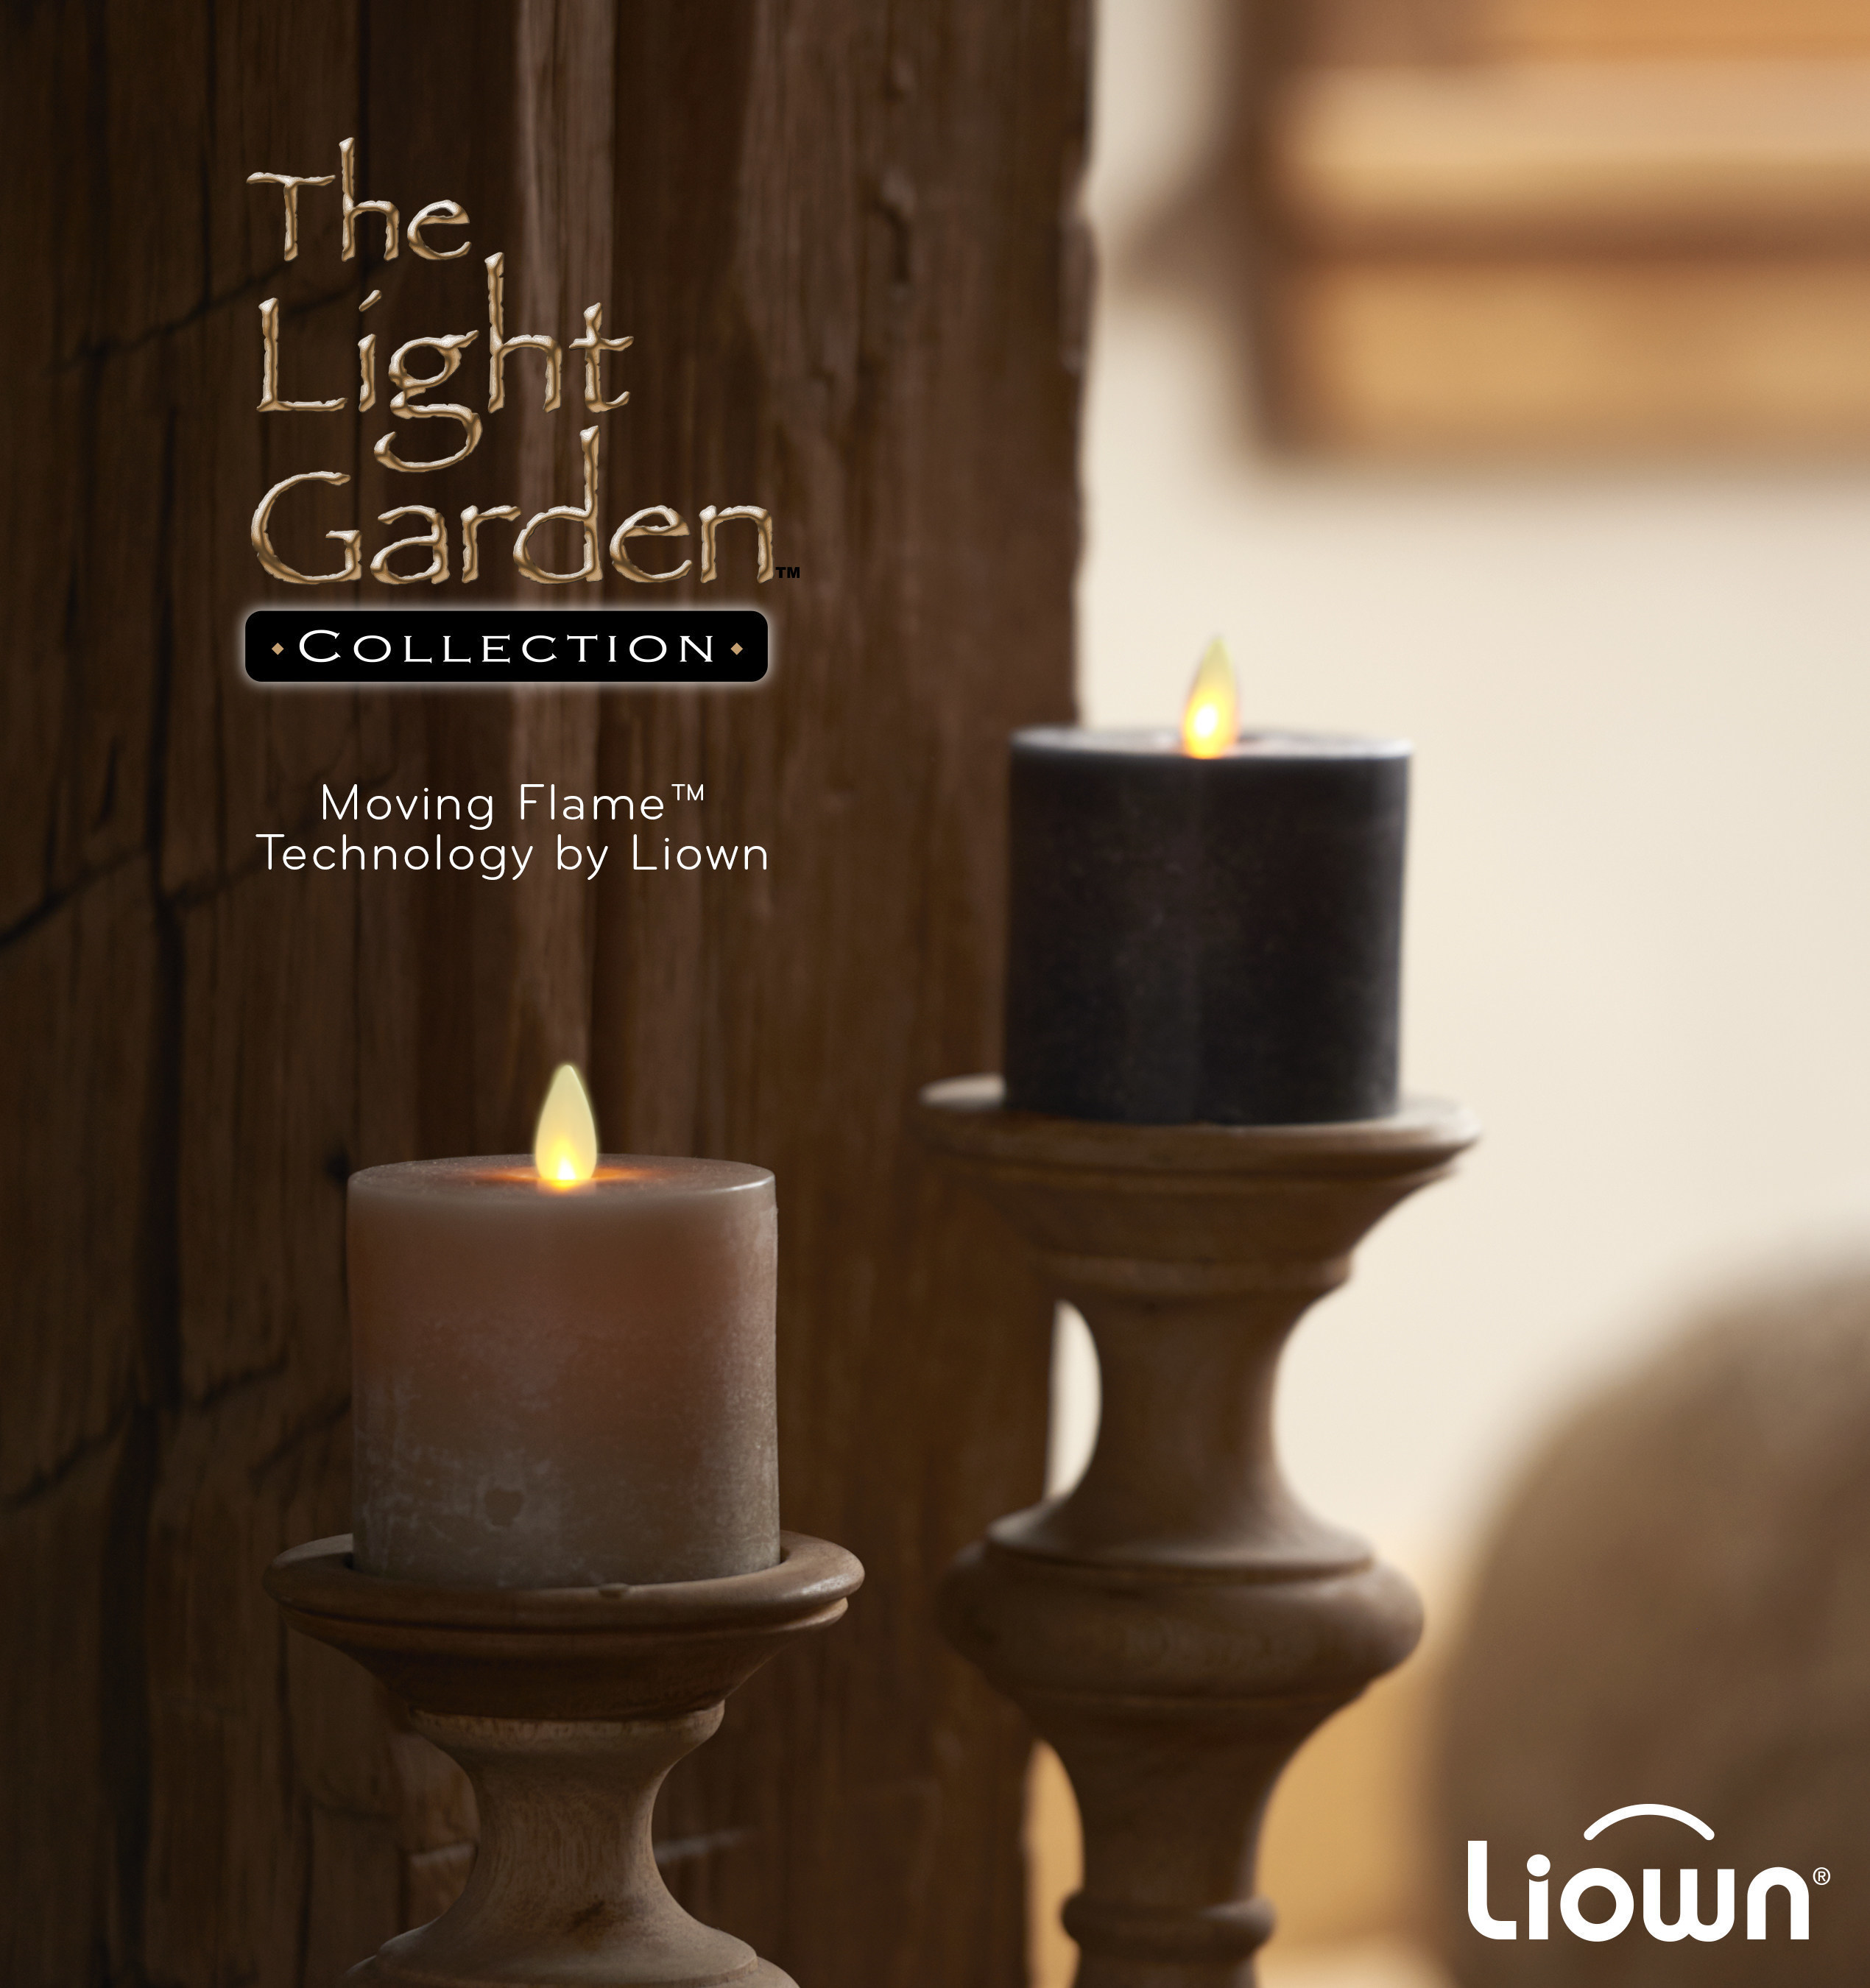 The Light Garden To Distribute Extensive Line of Liown Flameless Candles at AmericasMart Atlanta,